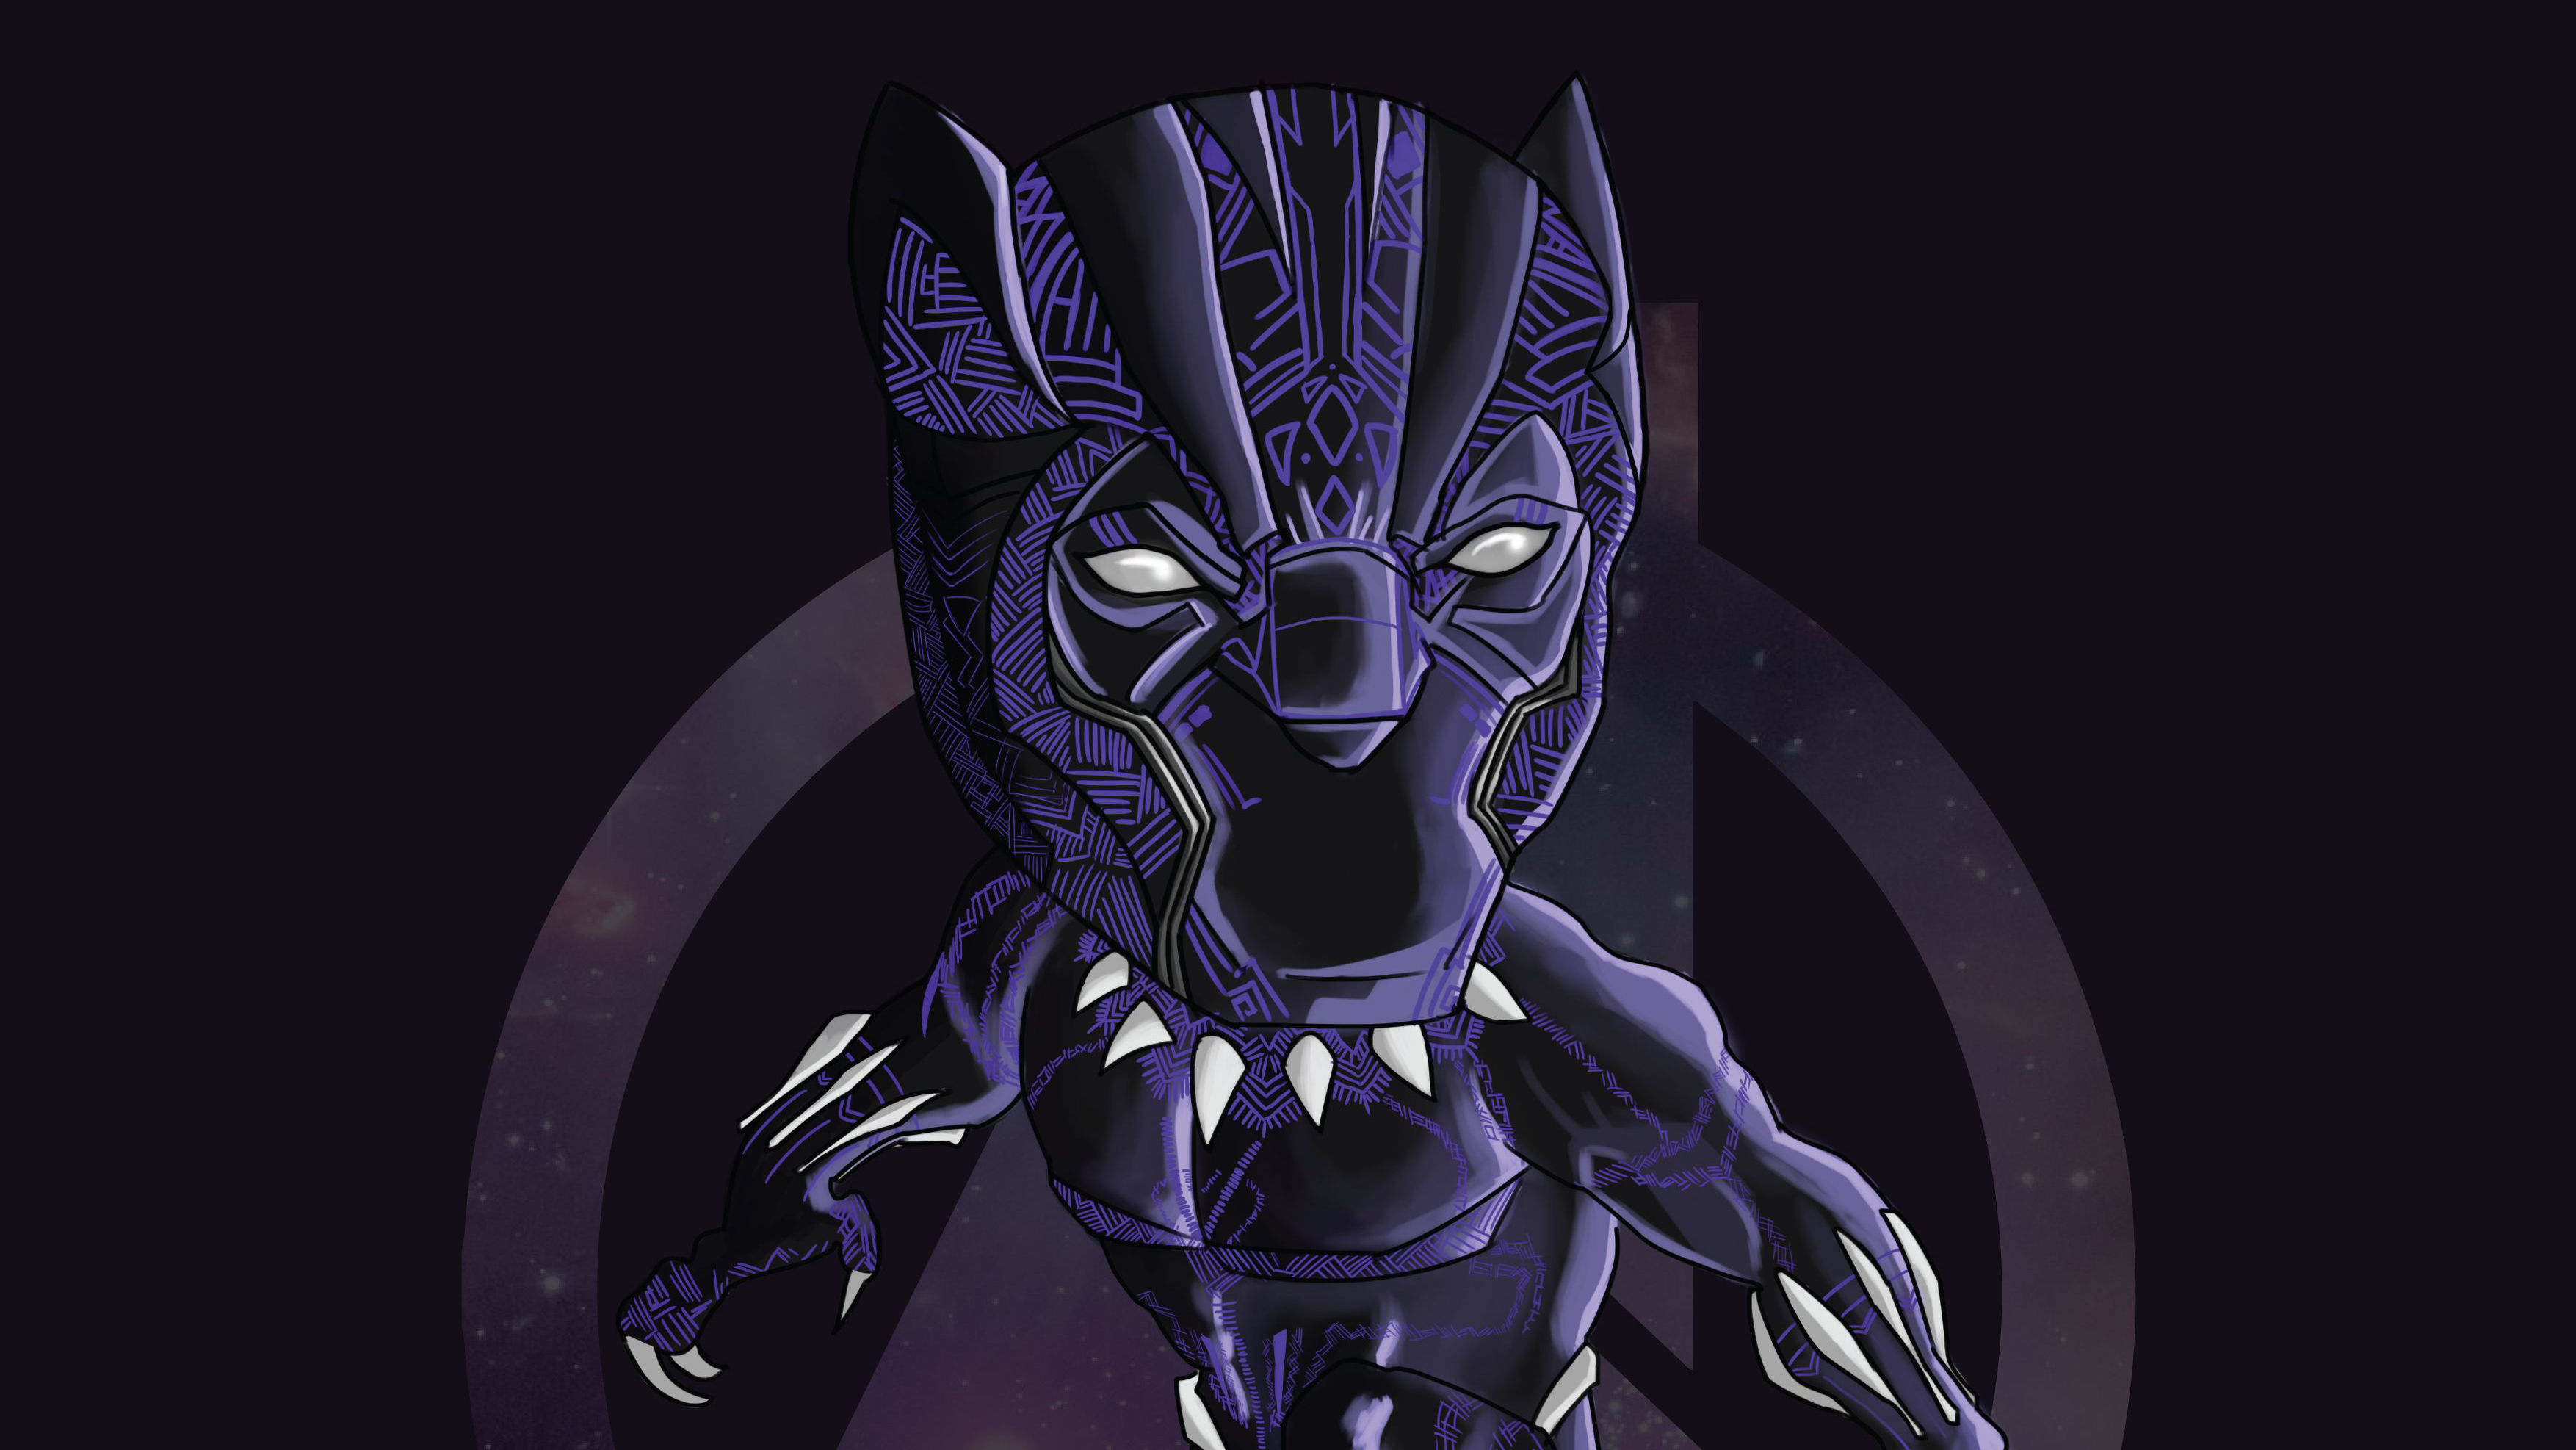 480x854 Black Panther Doodle Art Android One Hd 4k